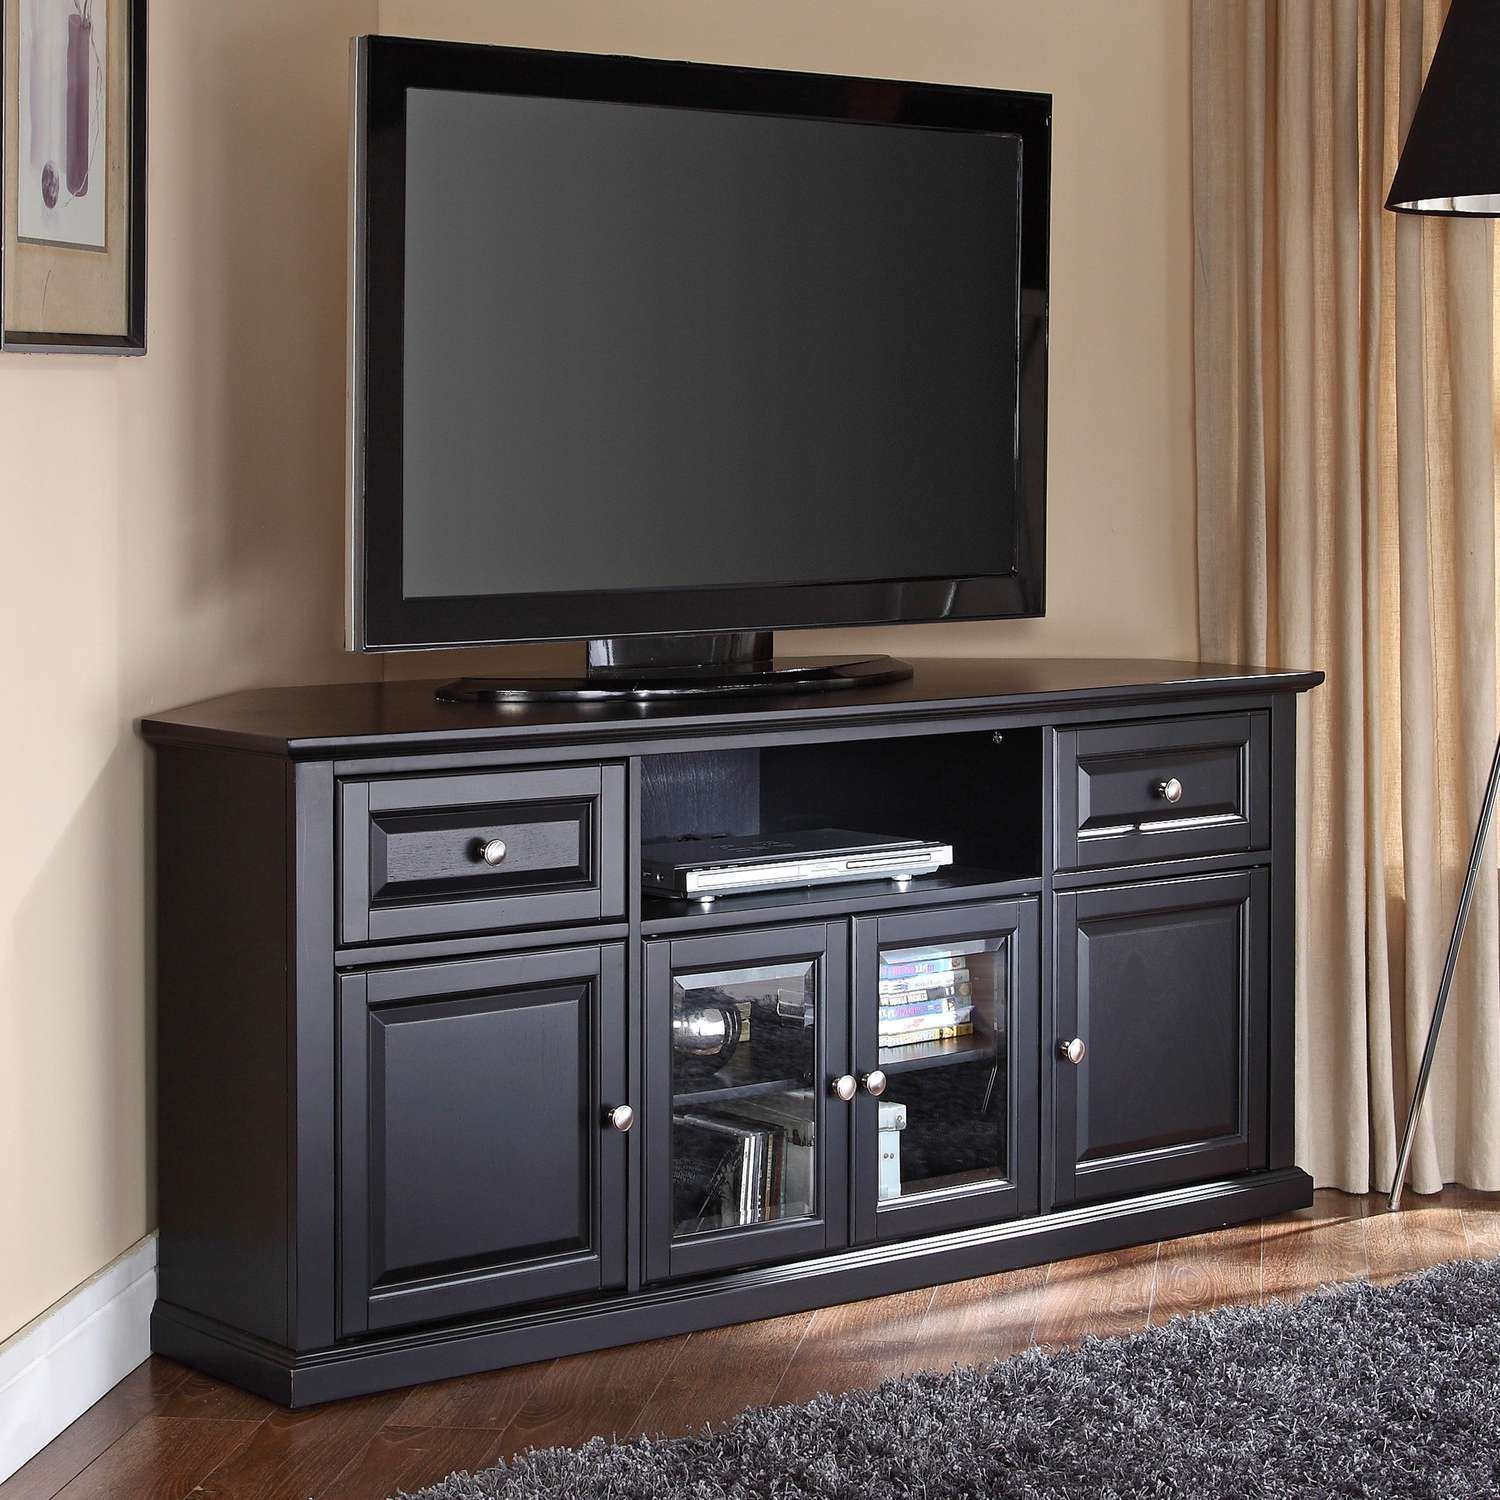 Talla Cabinets With Doors Glass Elegant Black Hardwood Cabinet Throughout Tall Black Tv Cabinets (View 19 of 20)